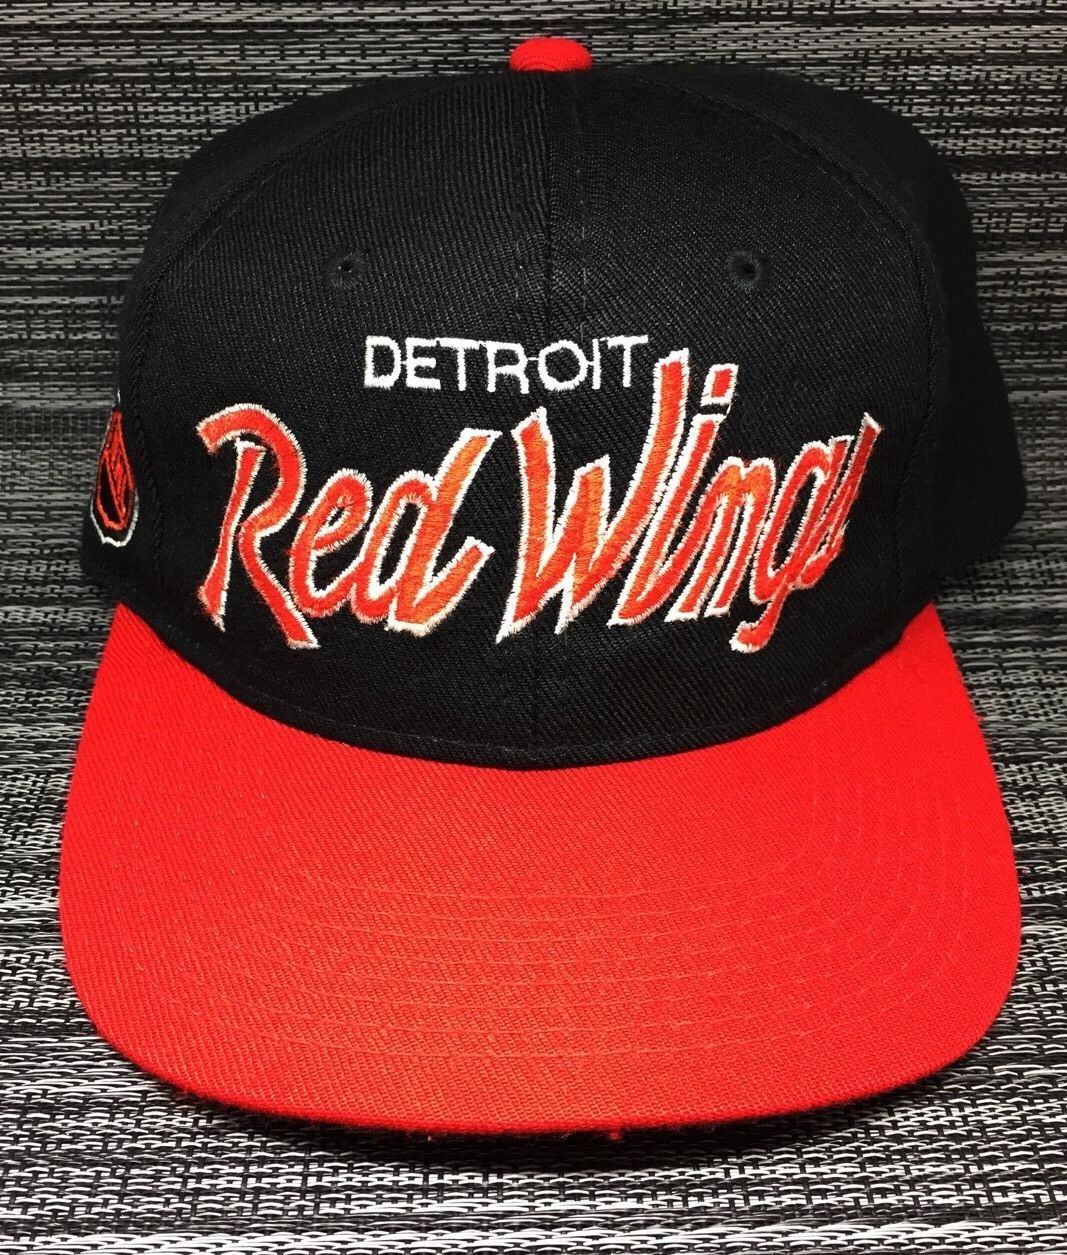 10ea61343 Detroit Red Wings Hat Vintage 1992 Script NHL Cap Sports Specialties  Snapback